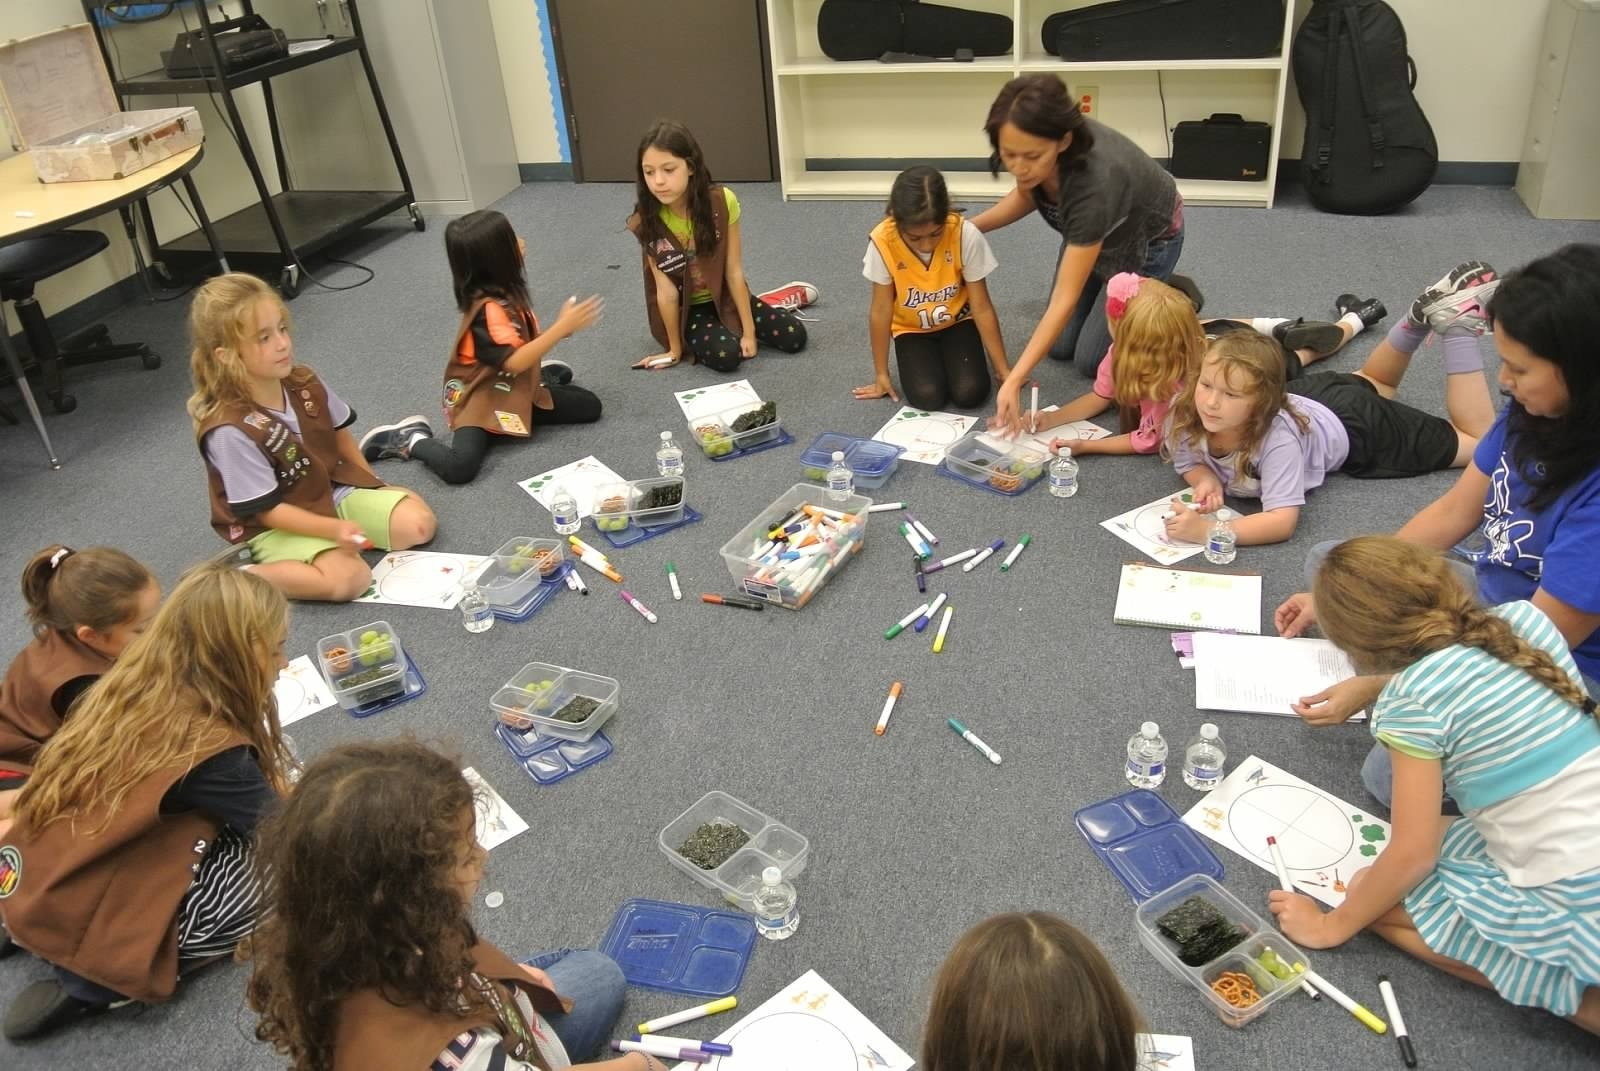 10 Awesome Brownie Girl Scout Meeting Ideas session 4 world of girls brownie girl scout journey kristibug 2